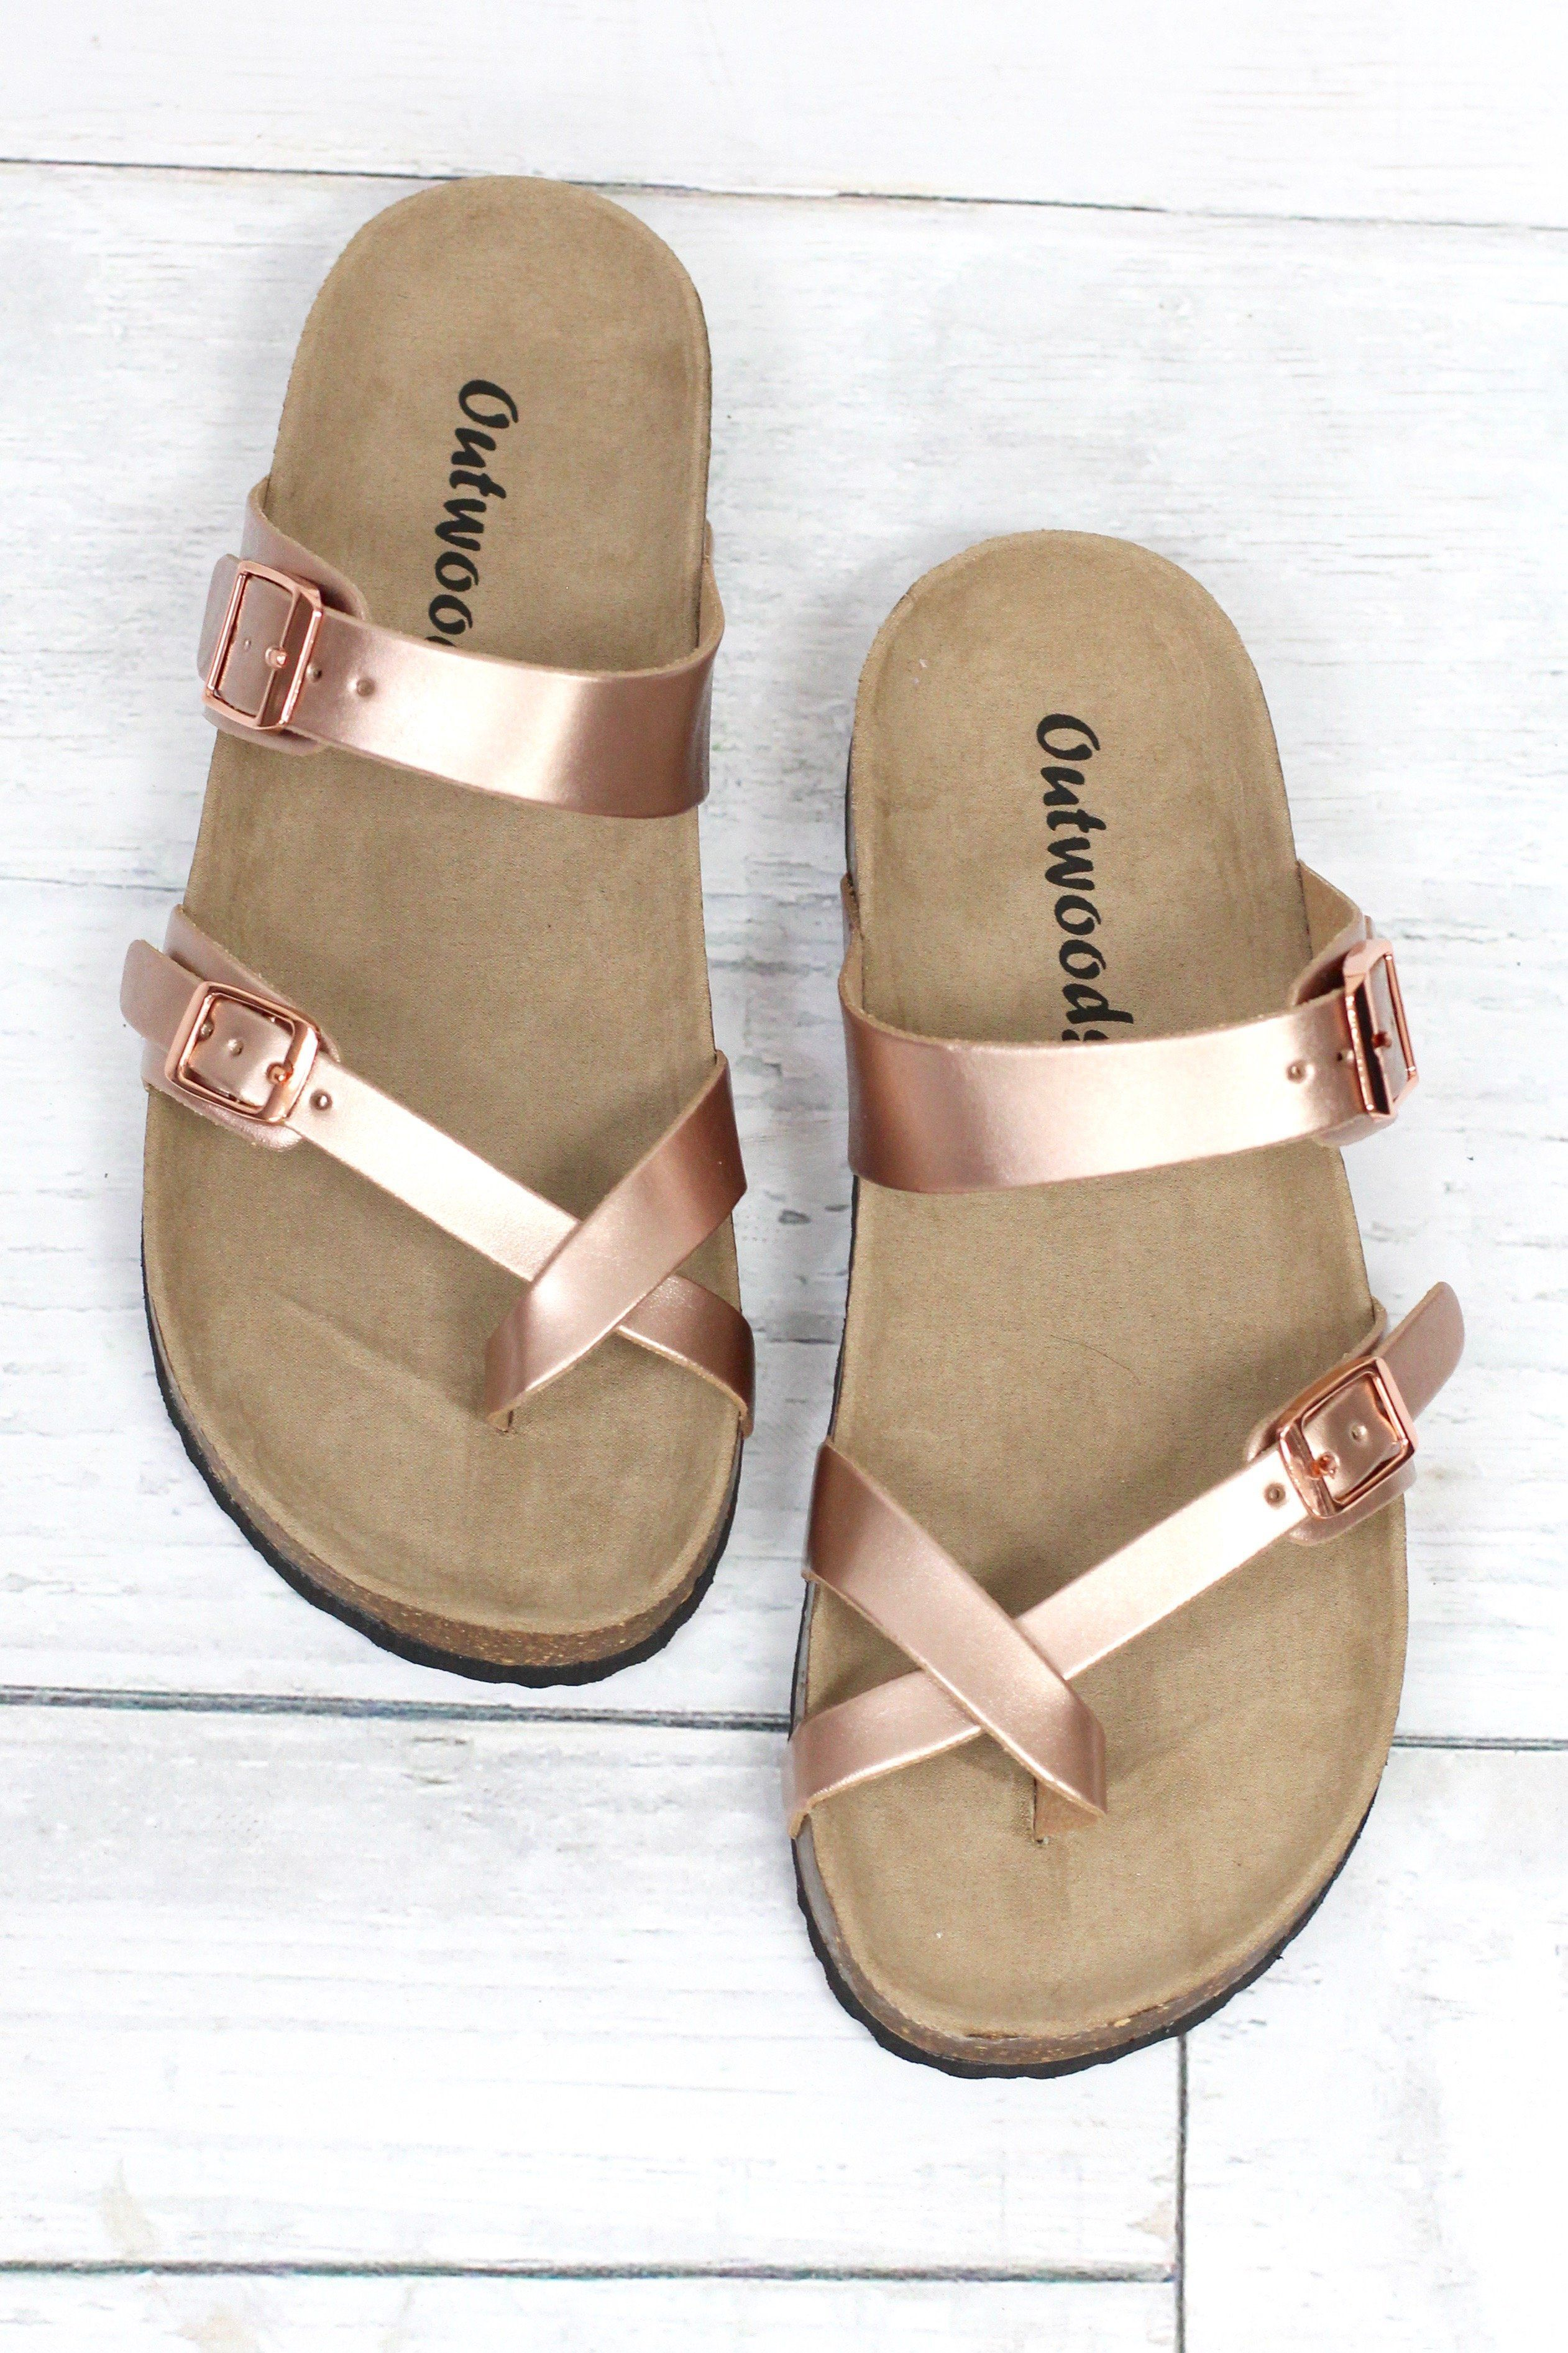 b6deb450e9dc Similar looking to the Birkenstock sandals at a fraction of the cost! Toe  strap